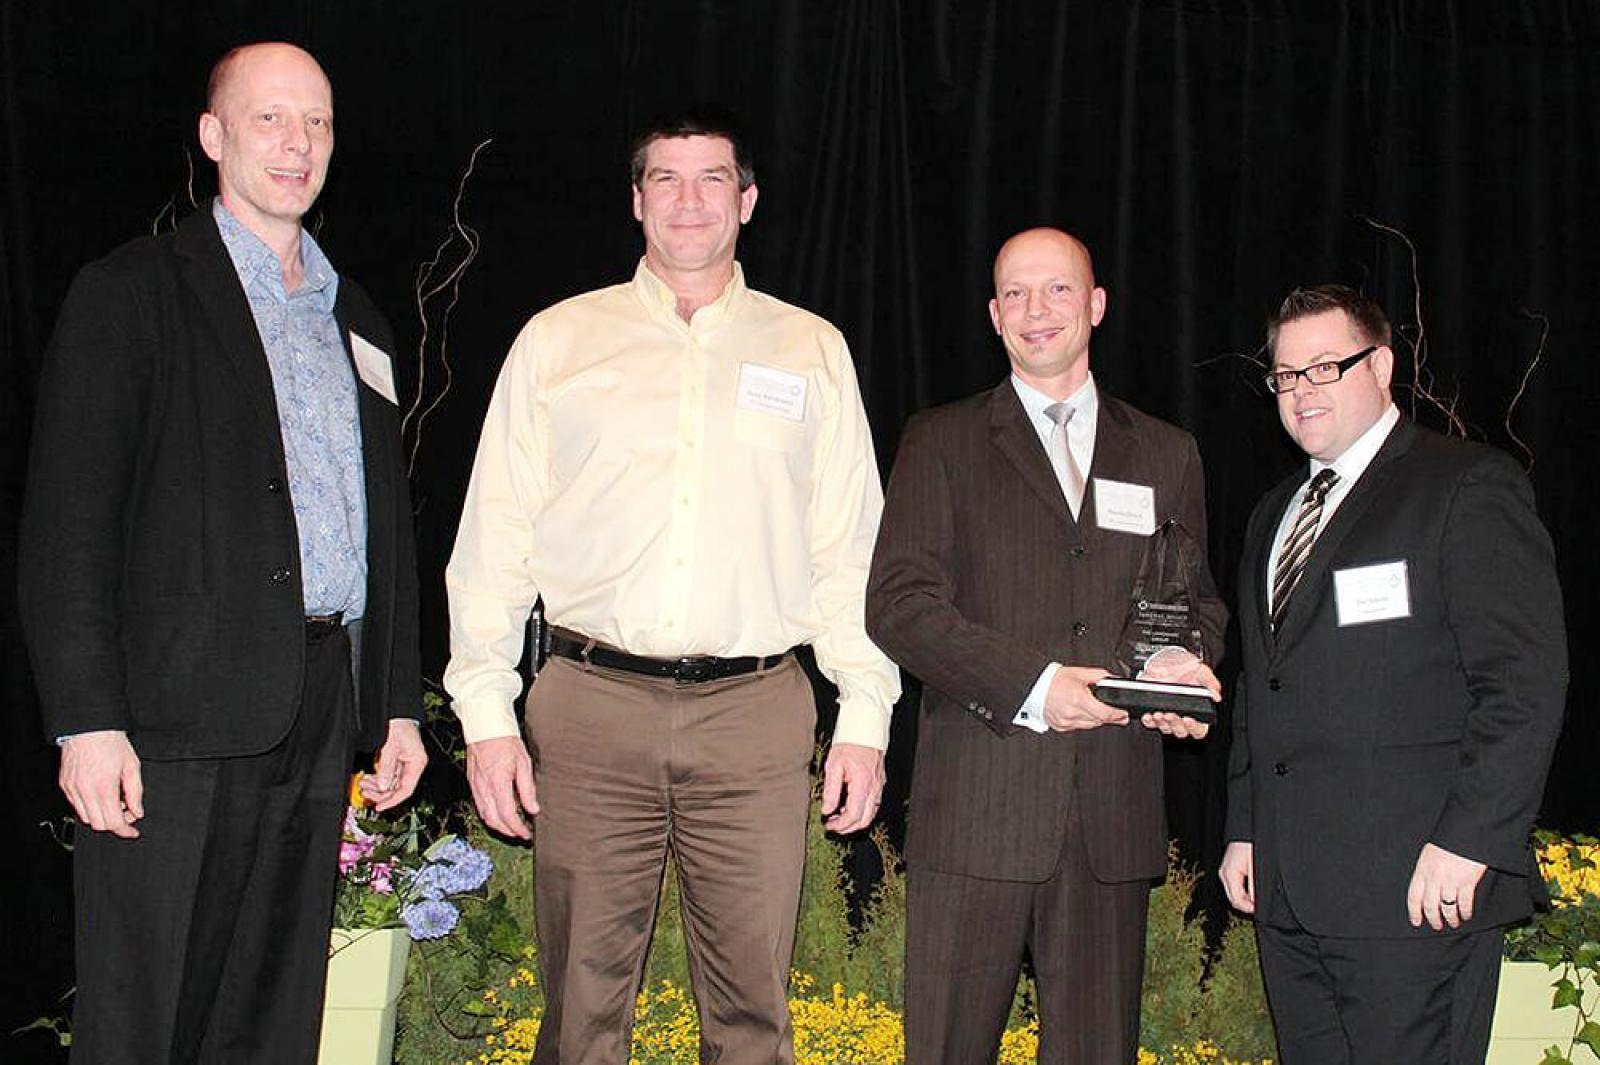 The Landmark Group of Thornbury received the Dynascape Award of Excellence for Landscape Design. In photo, from left, Mike Bosch, president of Dynascape; Gary Nordeman and Darren Bosch, both of The Landmark Group; and Joe Salemi, Dynascape product marketing manager.